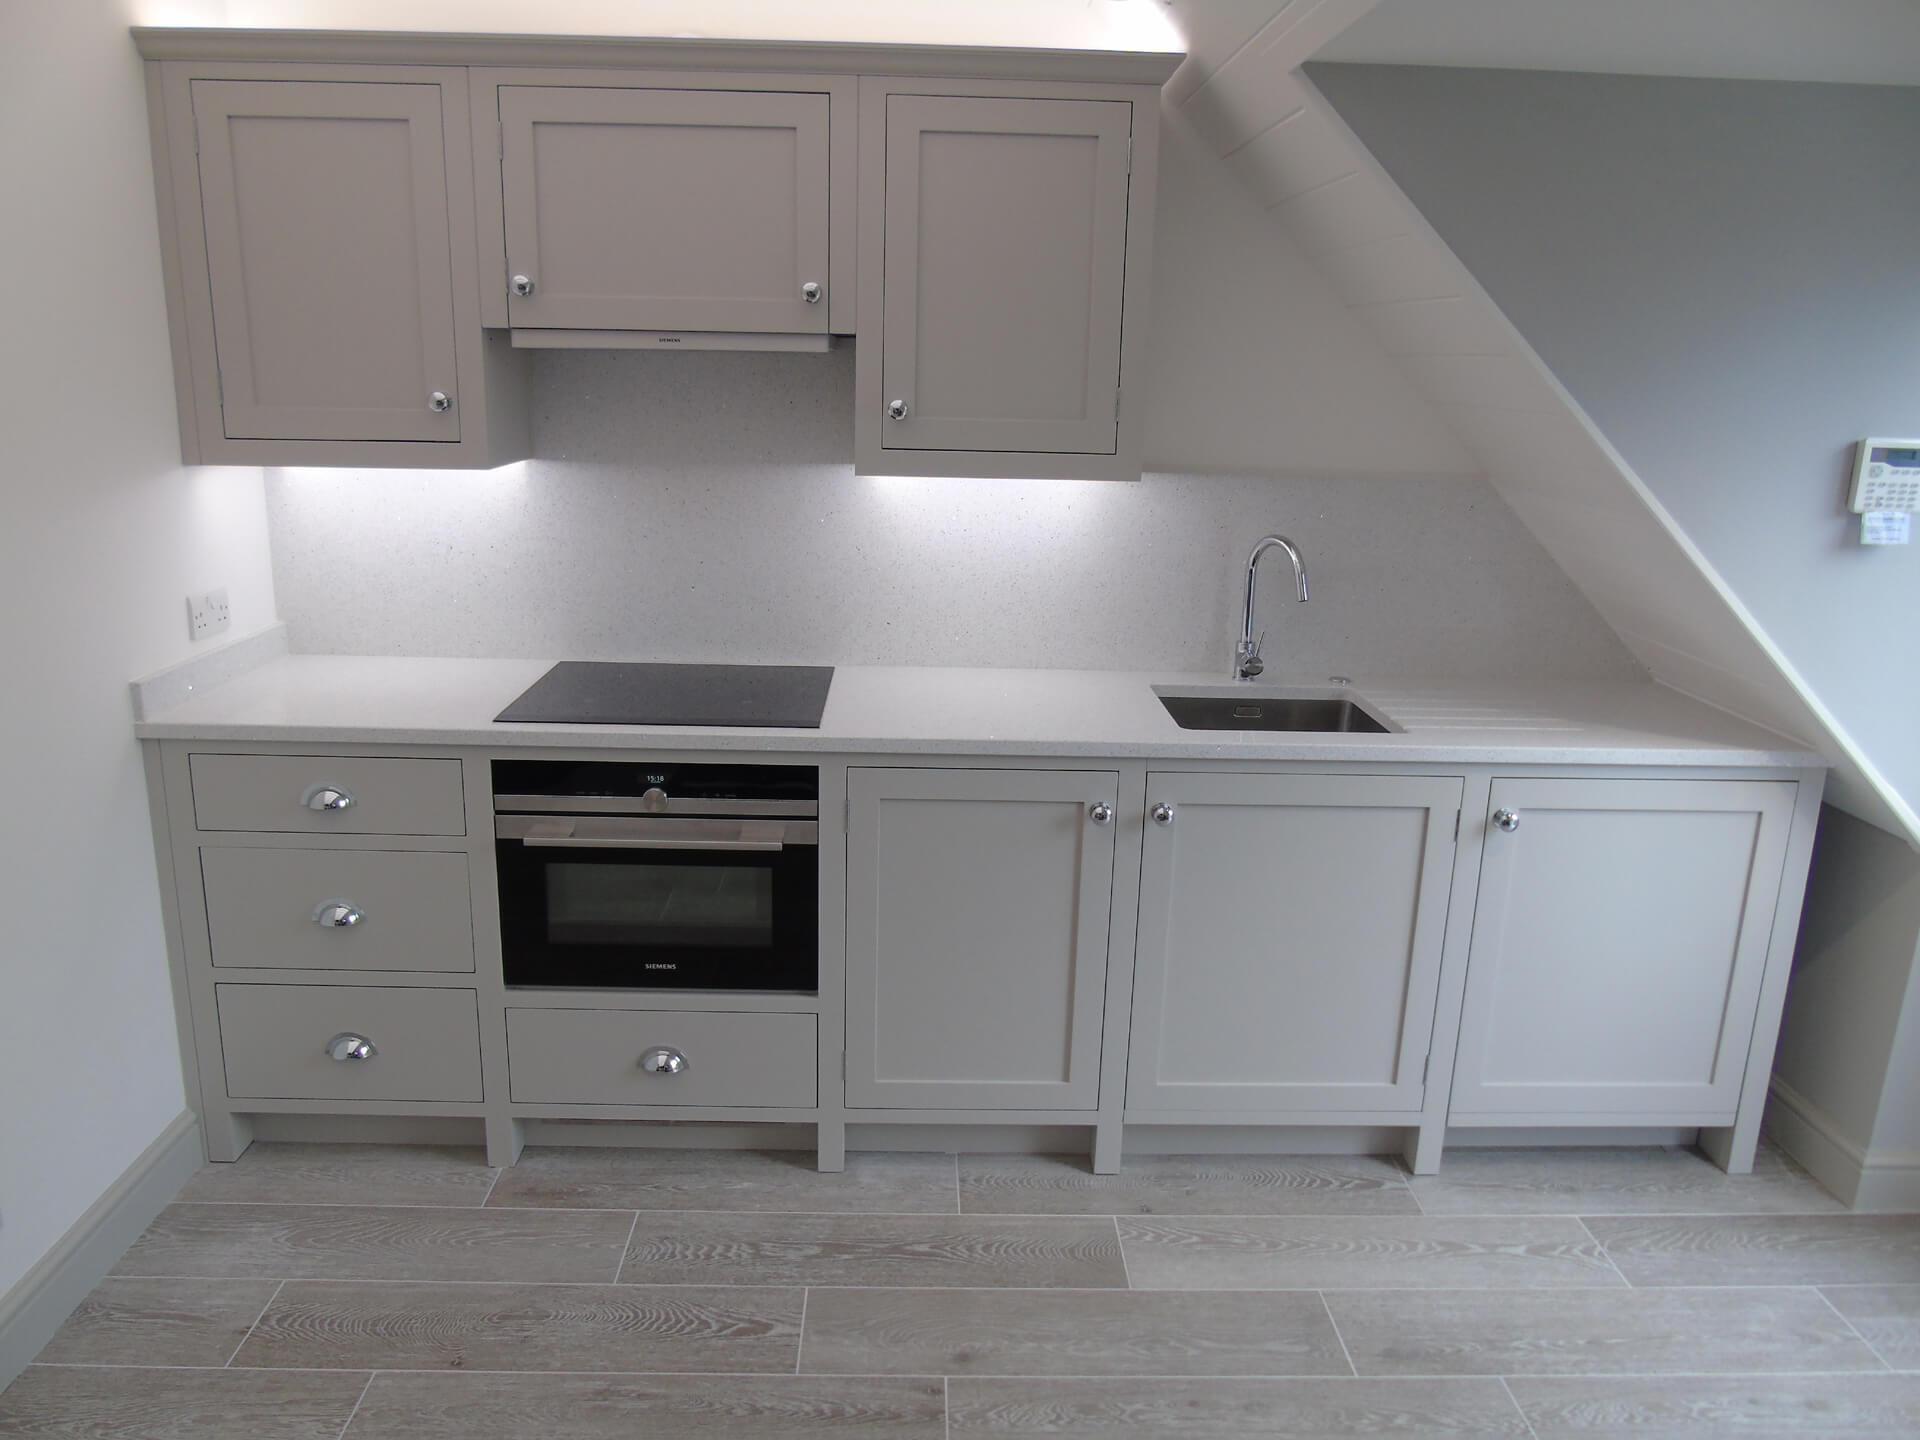 Painted Shaker Kitchenette – Henley in Arden